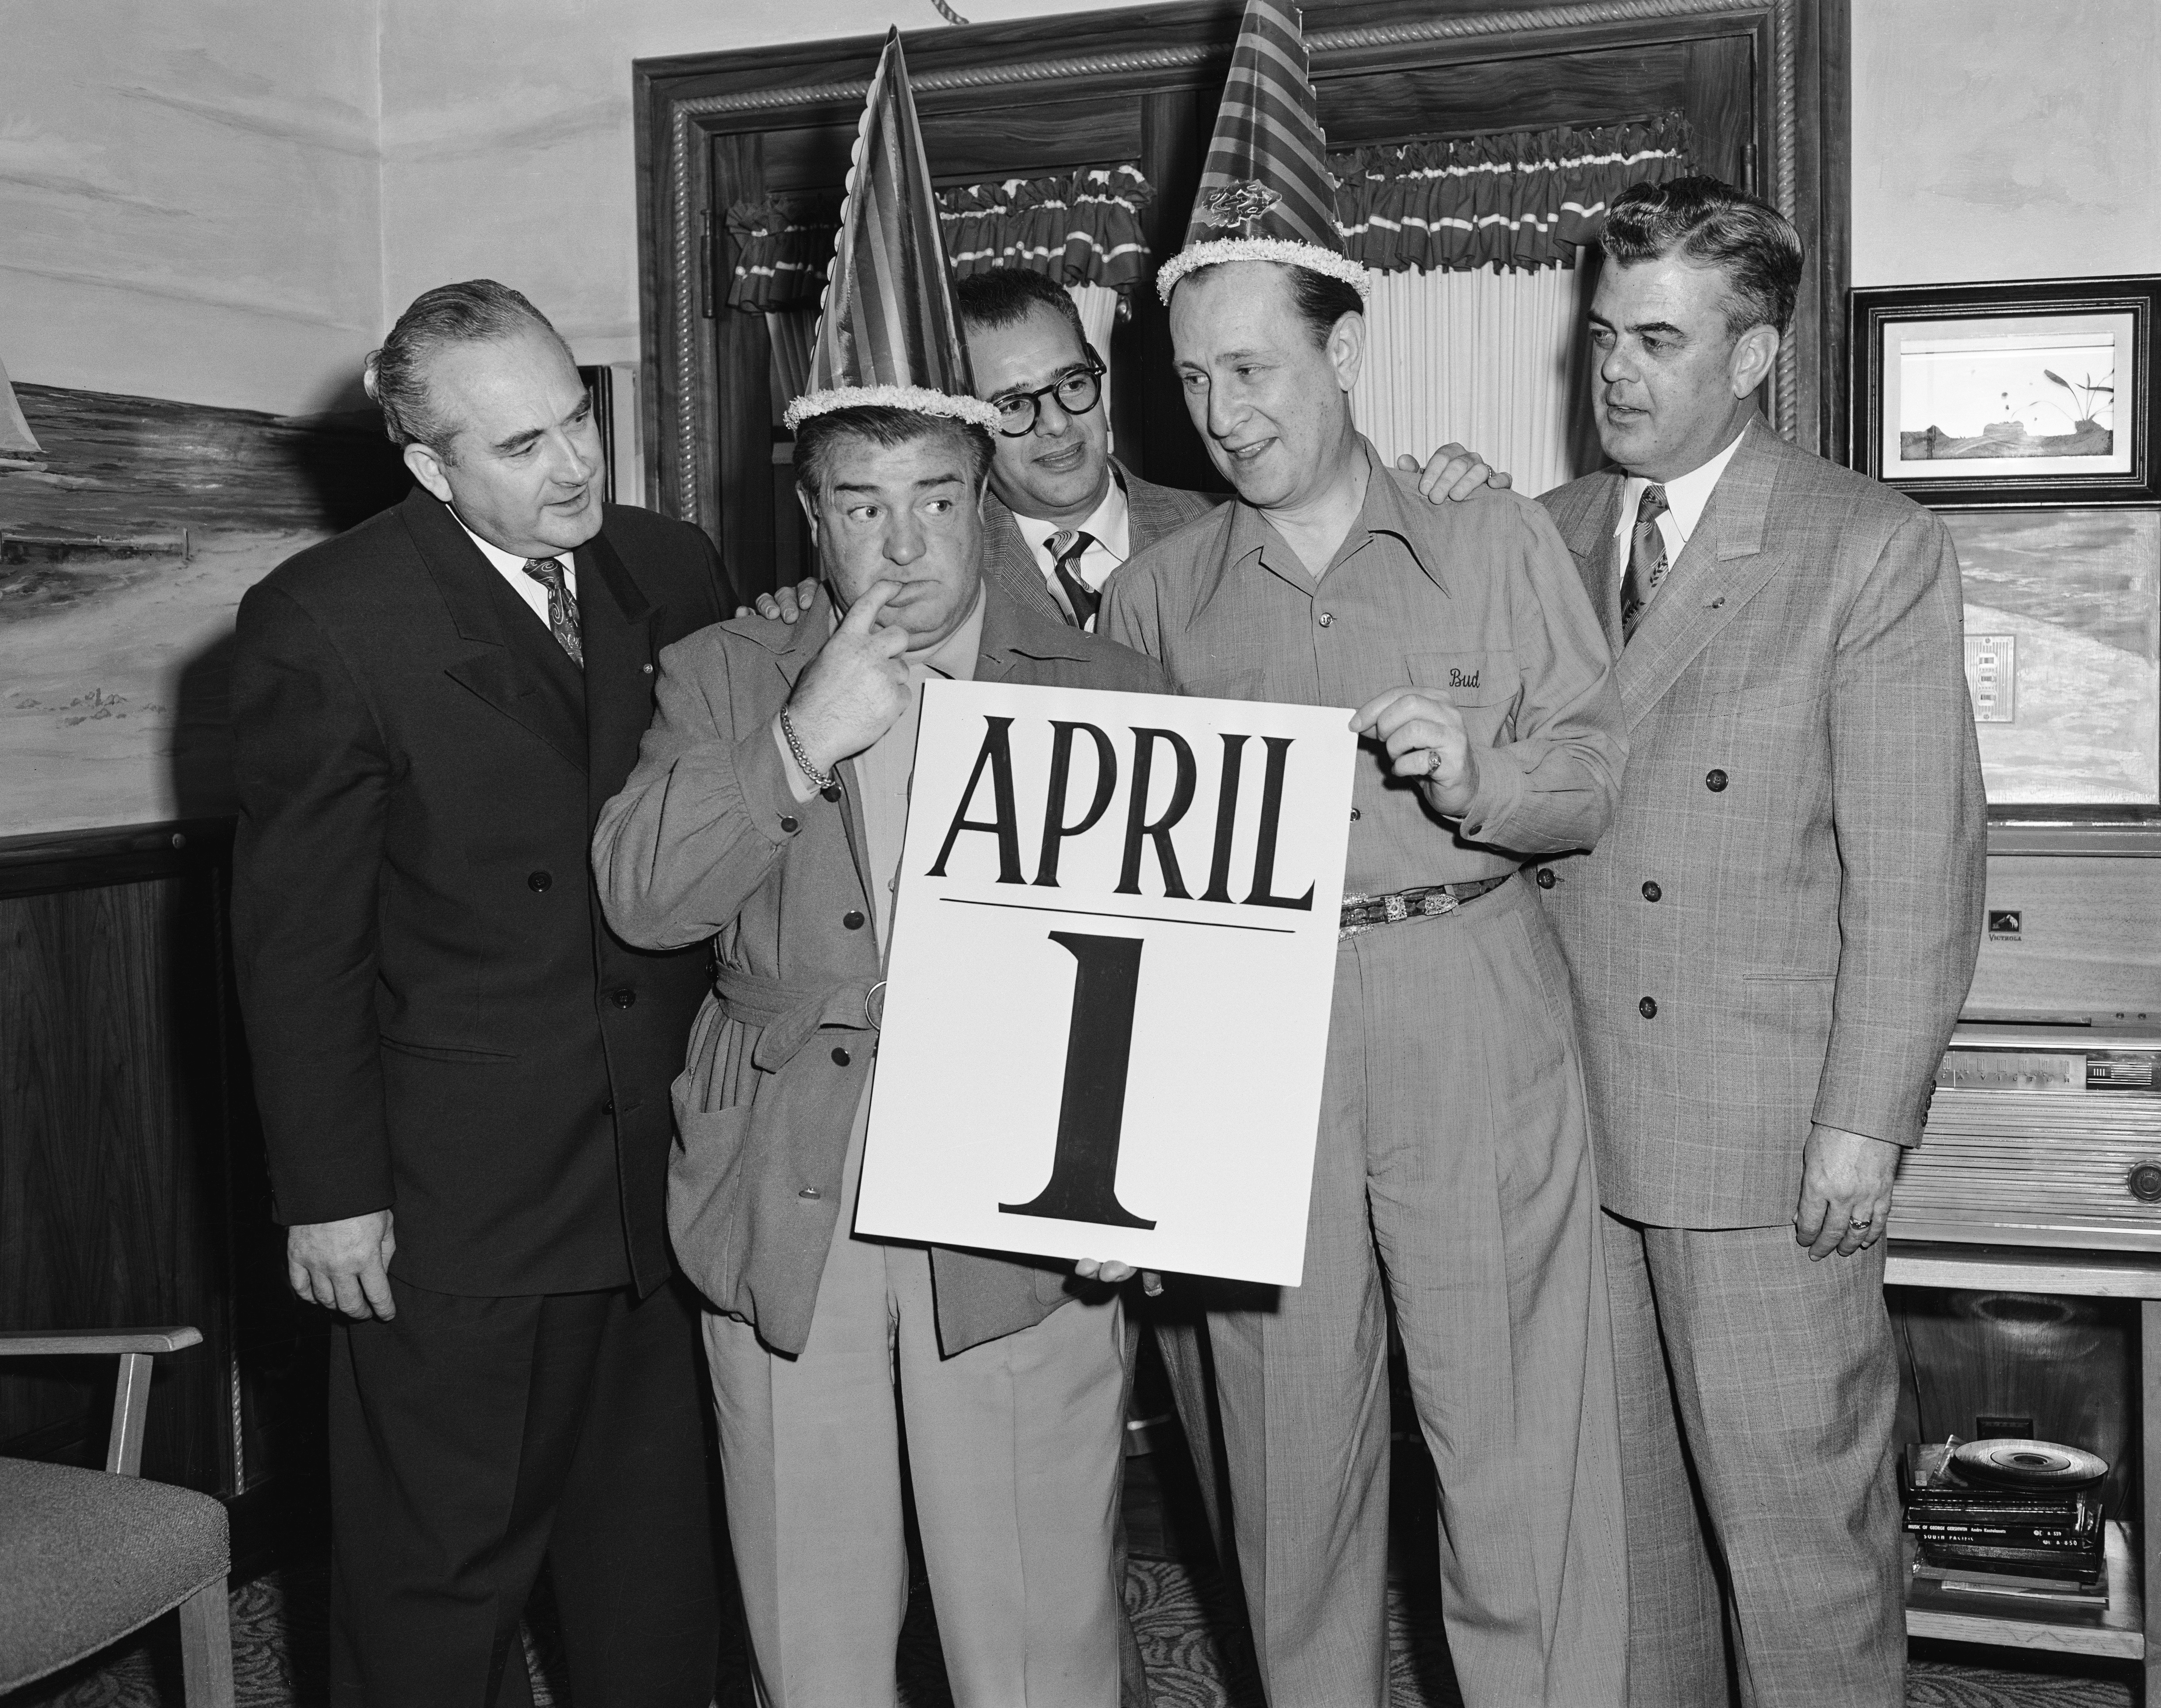 American comedians Bud Abbott (1897 - 1974) and Lou Costello (1906 - 1959) on April Fool's Day, early 1950s